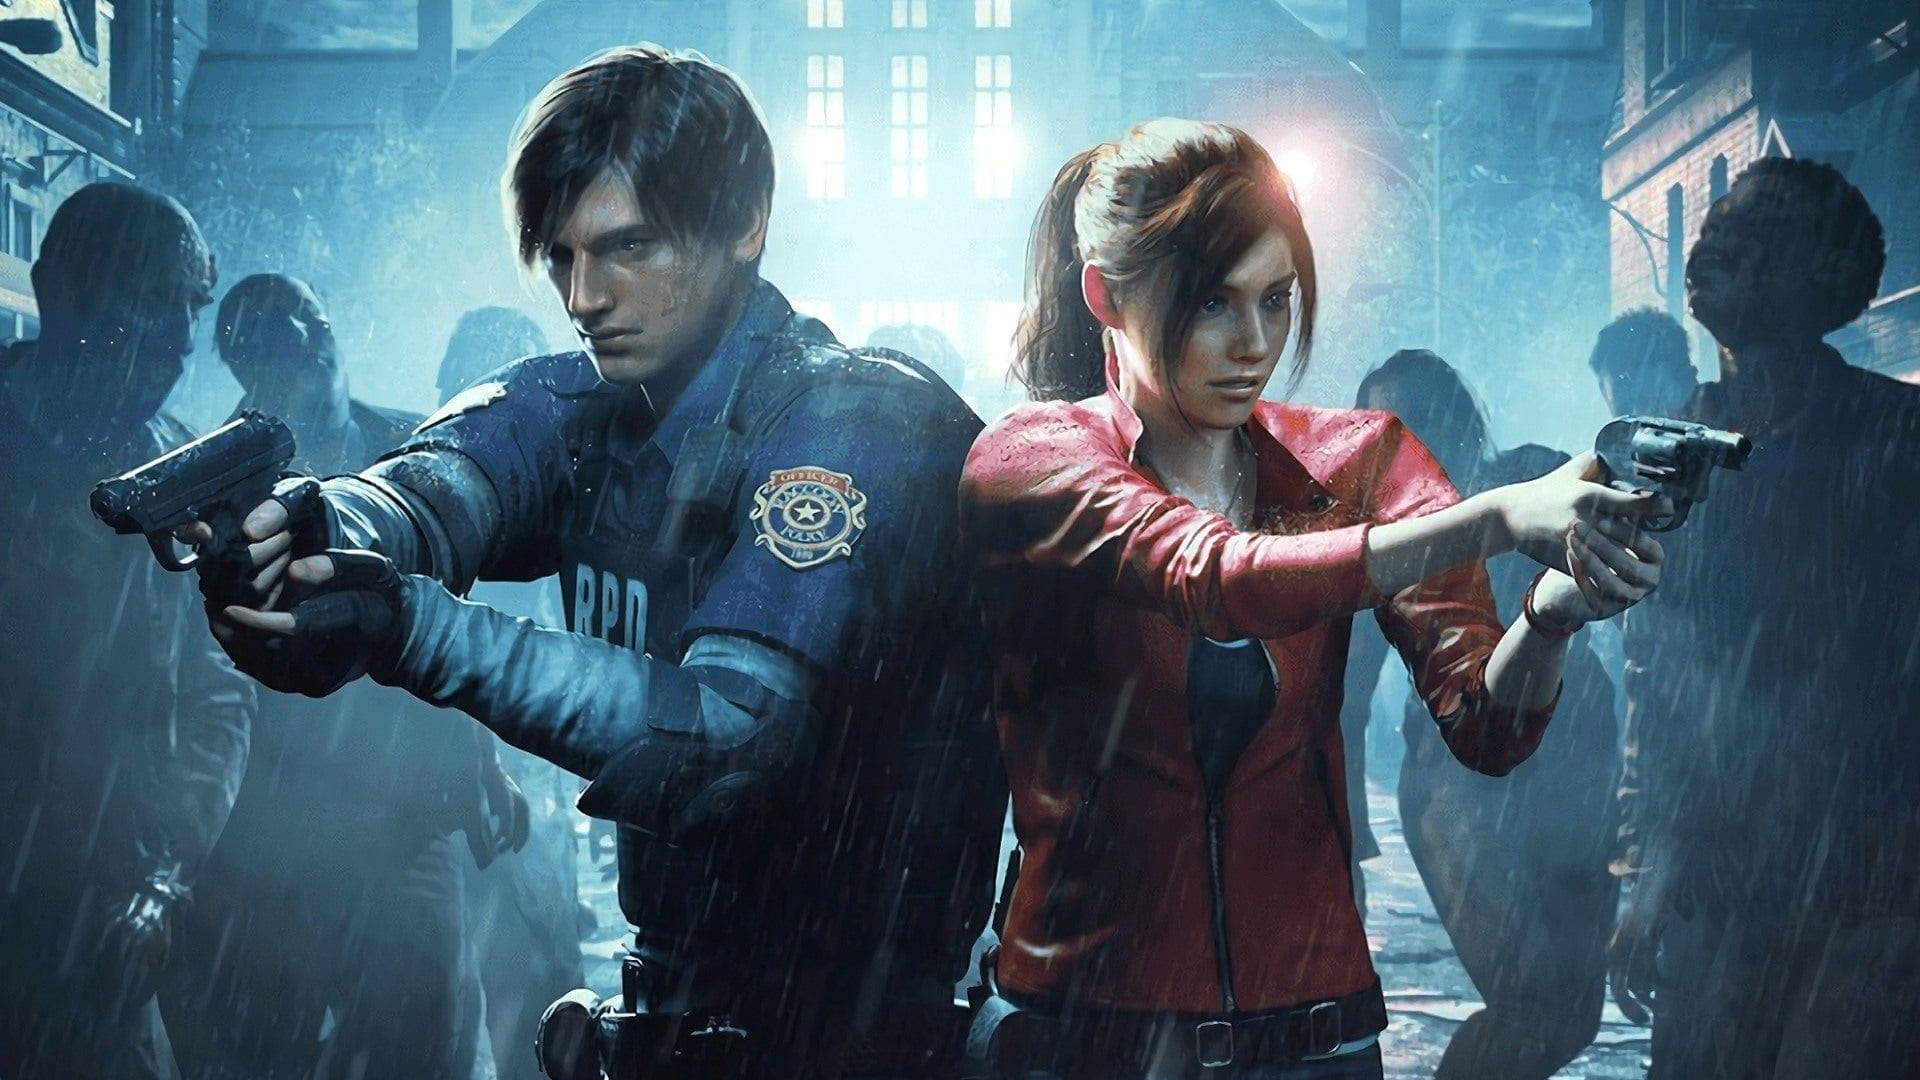 resident evil 2, black friday, playstation 4, Capcom